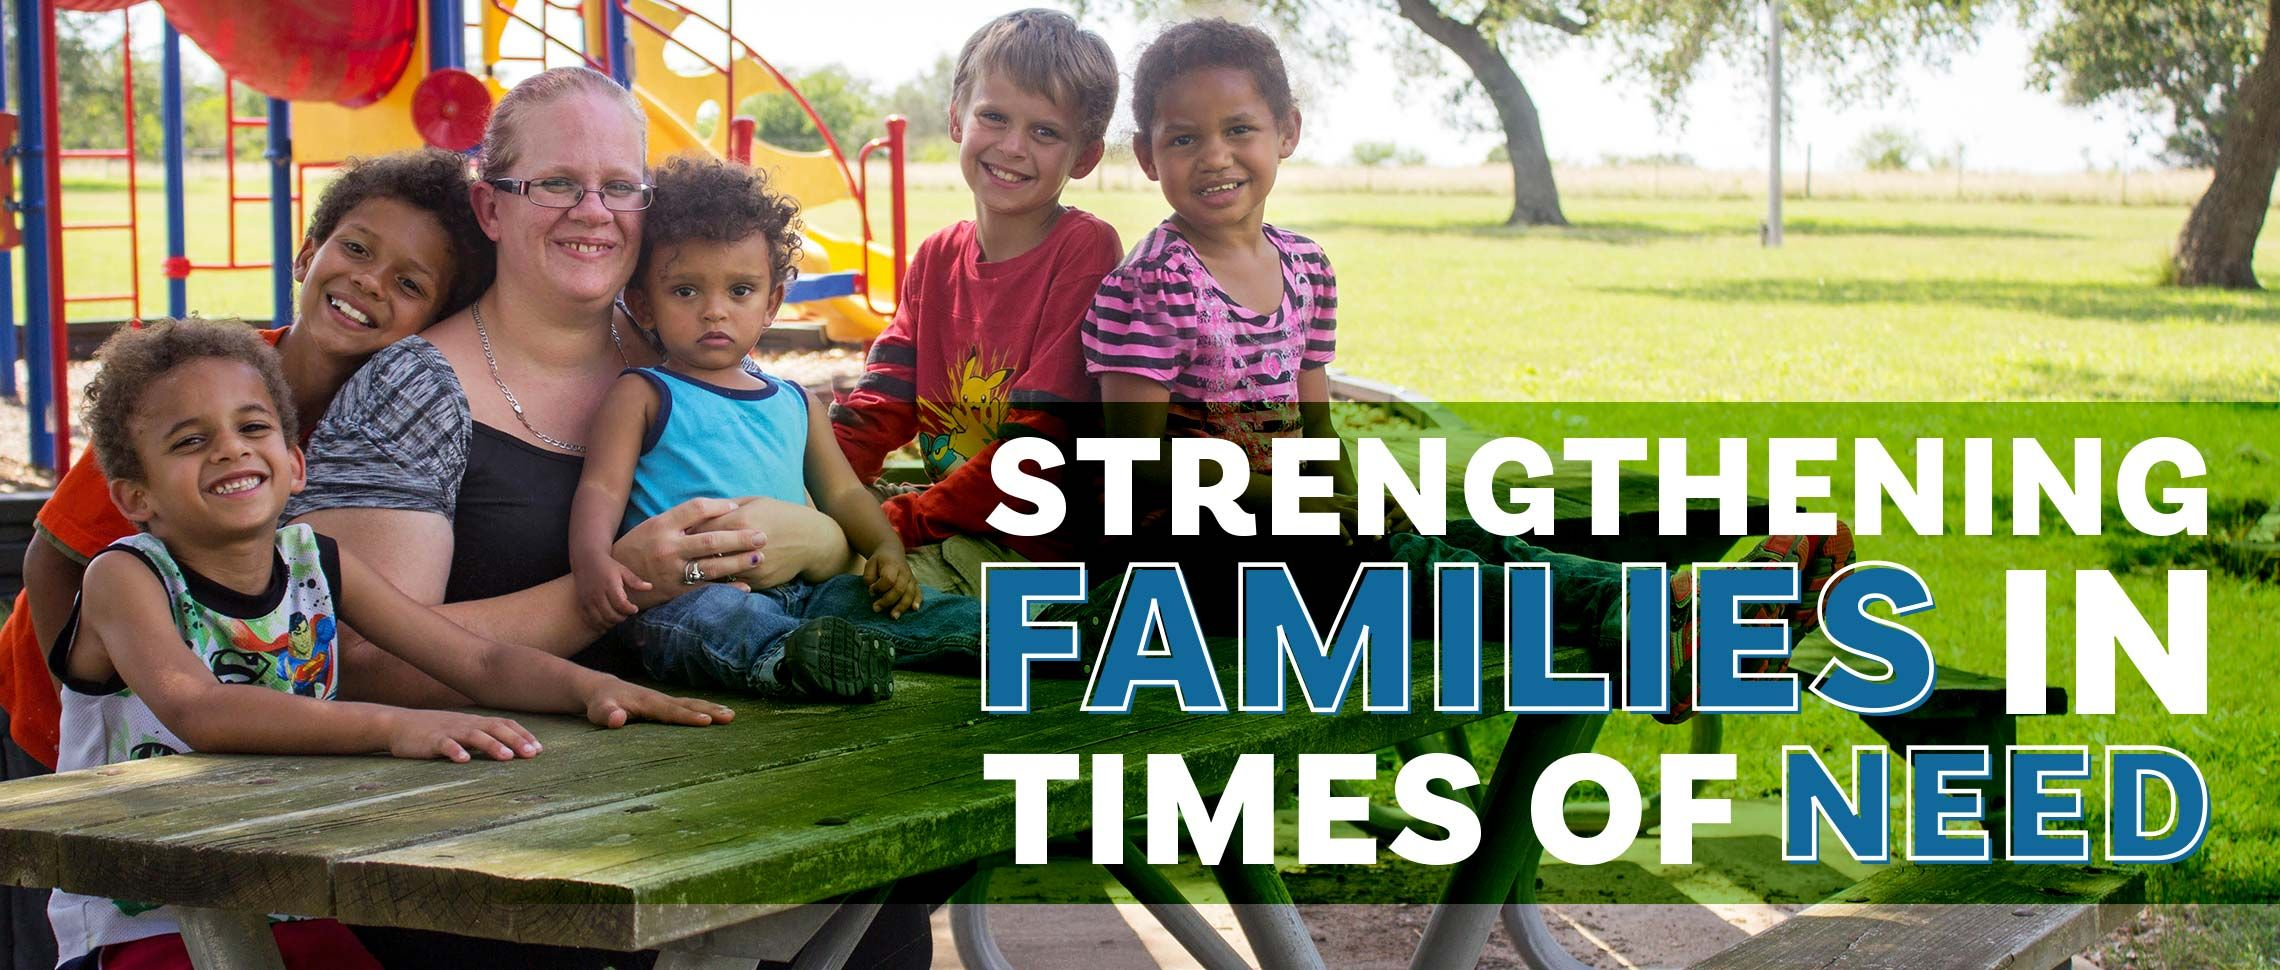 Strengthening families in times of need